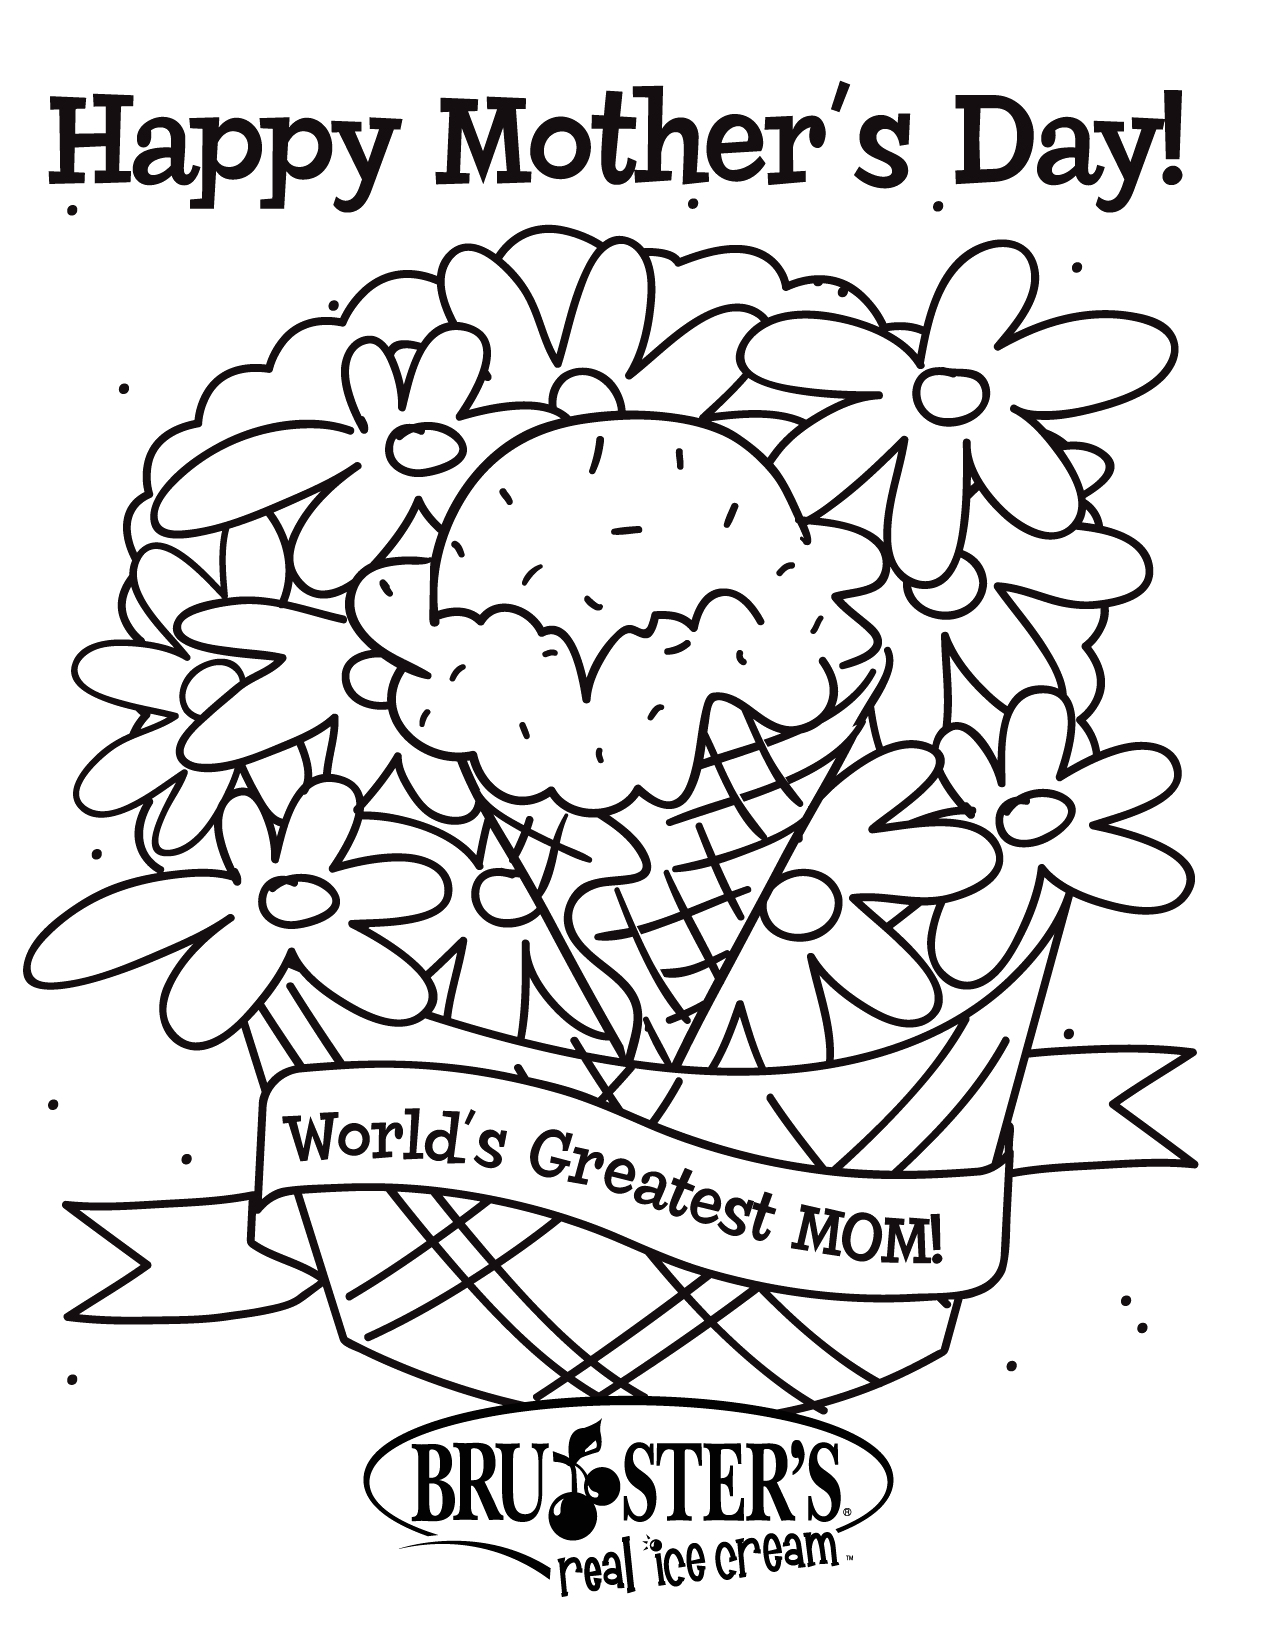 Free Mothers Day Coloring Pages for Kids Free Printable Mothers Day Coloring Pages for Kids